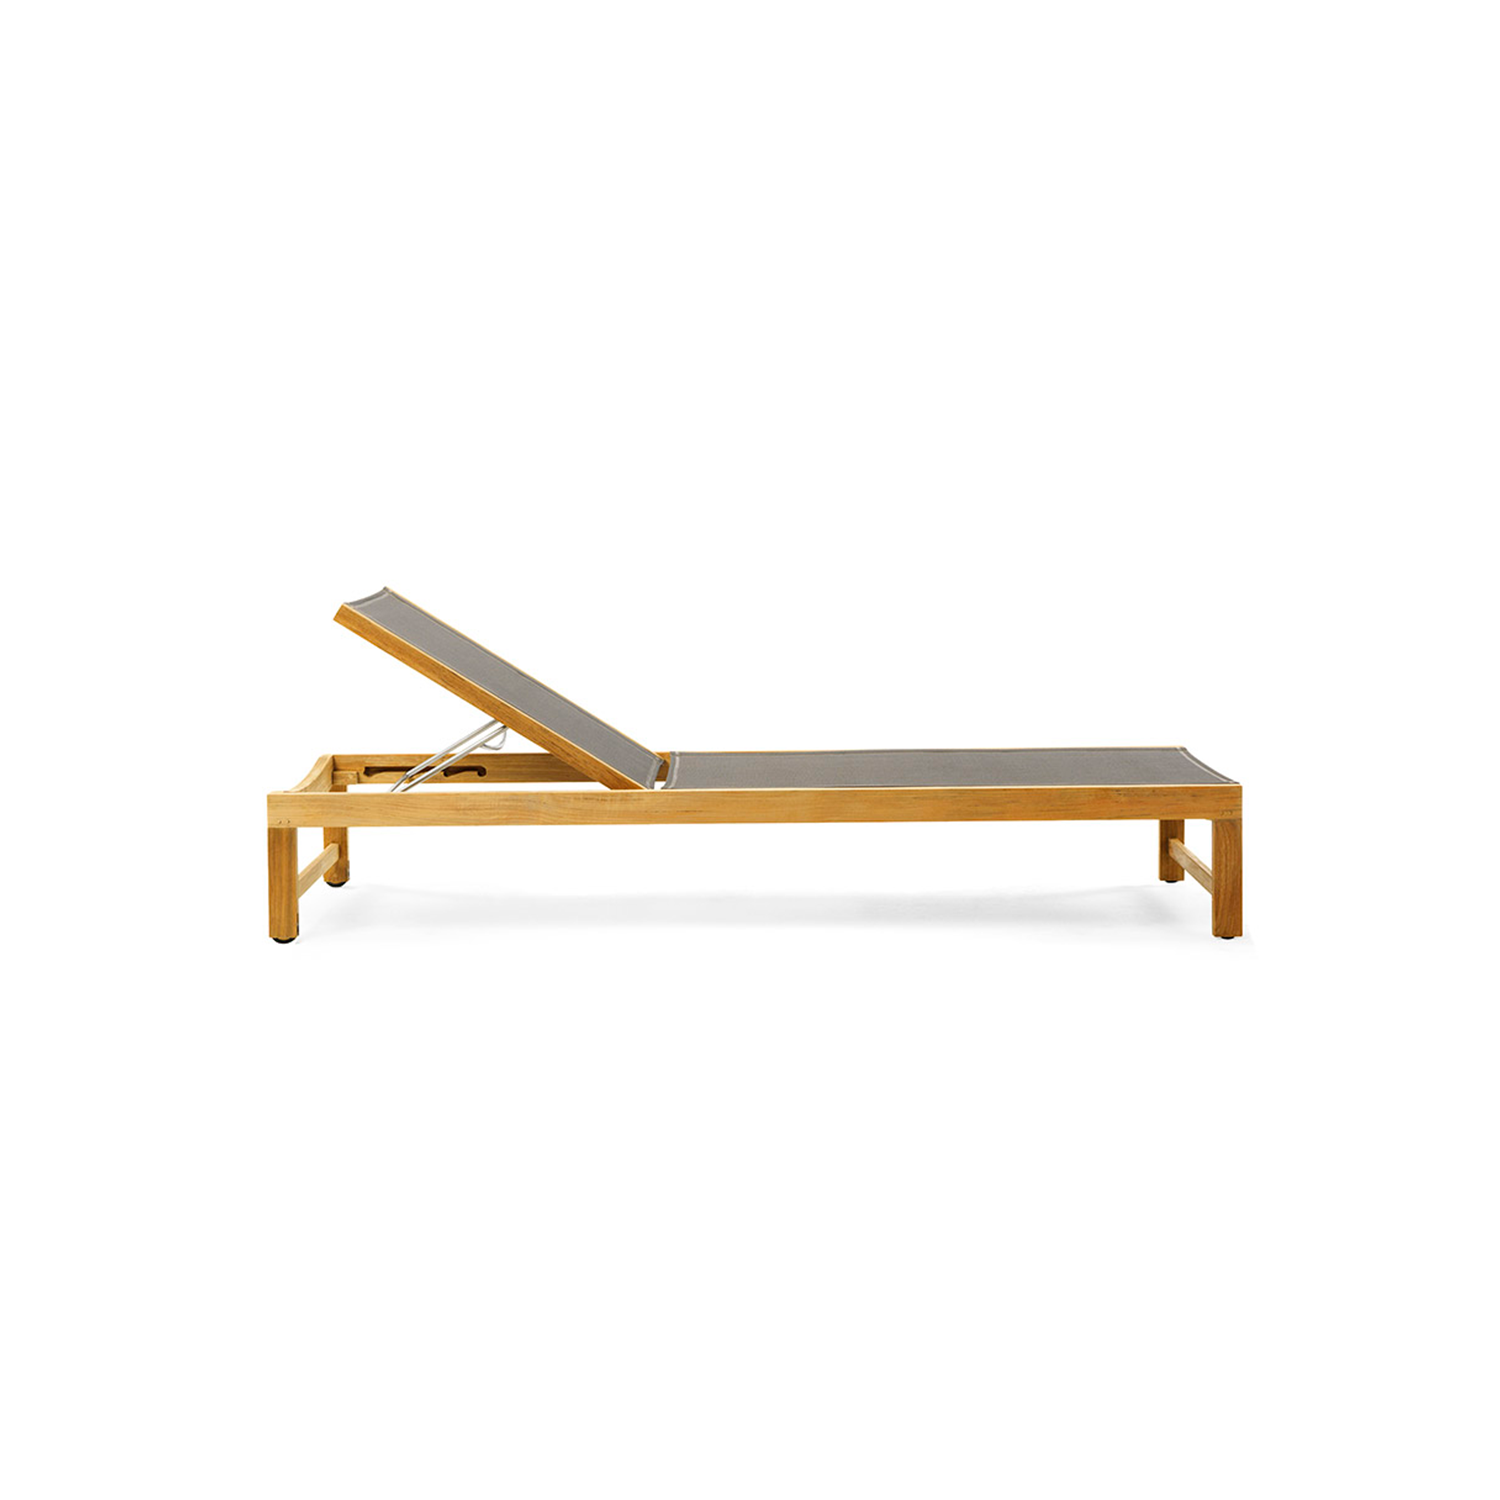 Sand Teak + Ethitex Sunbed - The solid and rational wood frame of the Sand sun lounger, with adjustable back, accommodates, in the lighter solution, convenient waterproof fabric or, in the version in teak throughout, a soft mattress.  Sand sunbed by Ethimo with frame in teak of the highest quality and fabric in Ethitex. Adjustable backtrest in four positions. | Matter of Stuff